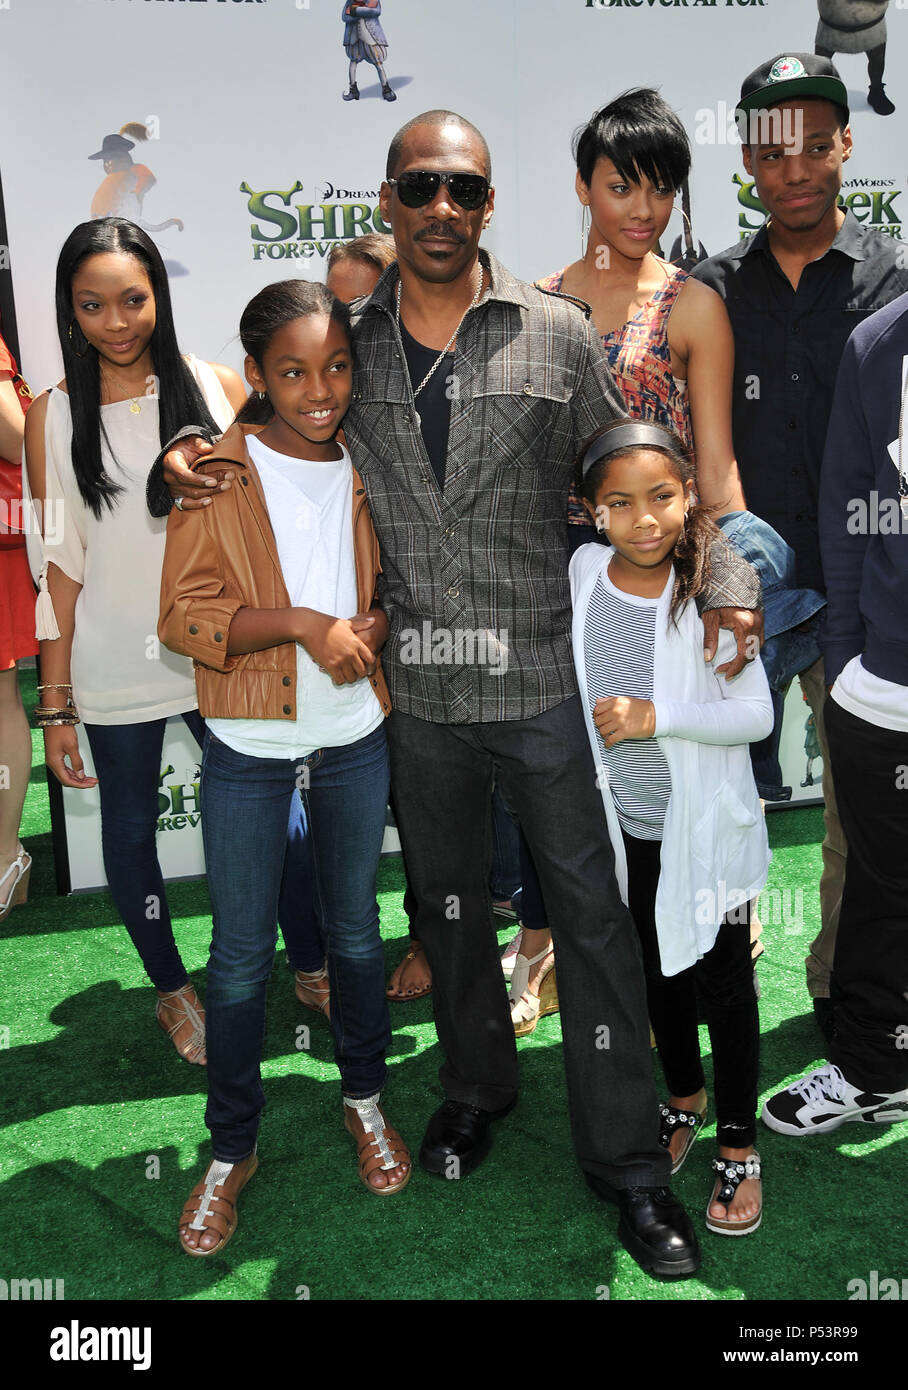 06 Eddie Murphy Kids 06 Shrek Forever After Premiere At The Gibson Amphitheatre In Los Angeles 06 Eddie Murphy Kids 06 Event In Hollywood Life California Red Carpet Event Usa Film Dolittle films, axel foley in the beverly hills cop franchise. https www alamy com 06 eddie murphy kids 06 shrek forever after premiere at the gibson amphitheatre in los angeles06 eddie murphy kids 06 event in hollywood life california red carpet event usa film industry celebrities photography bestof arts culture and entertainment celebrities fashion best of hollywood life event in hollywood life california red carpet and backstage music celebrities topix couple family husband and wife and kids children brothers and sisters inquiry tsuni gamma usacom credit tsuni usa 2010 image209681845 html